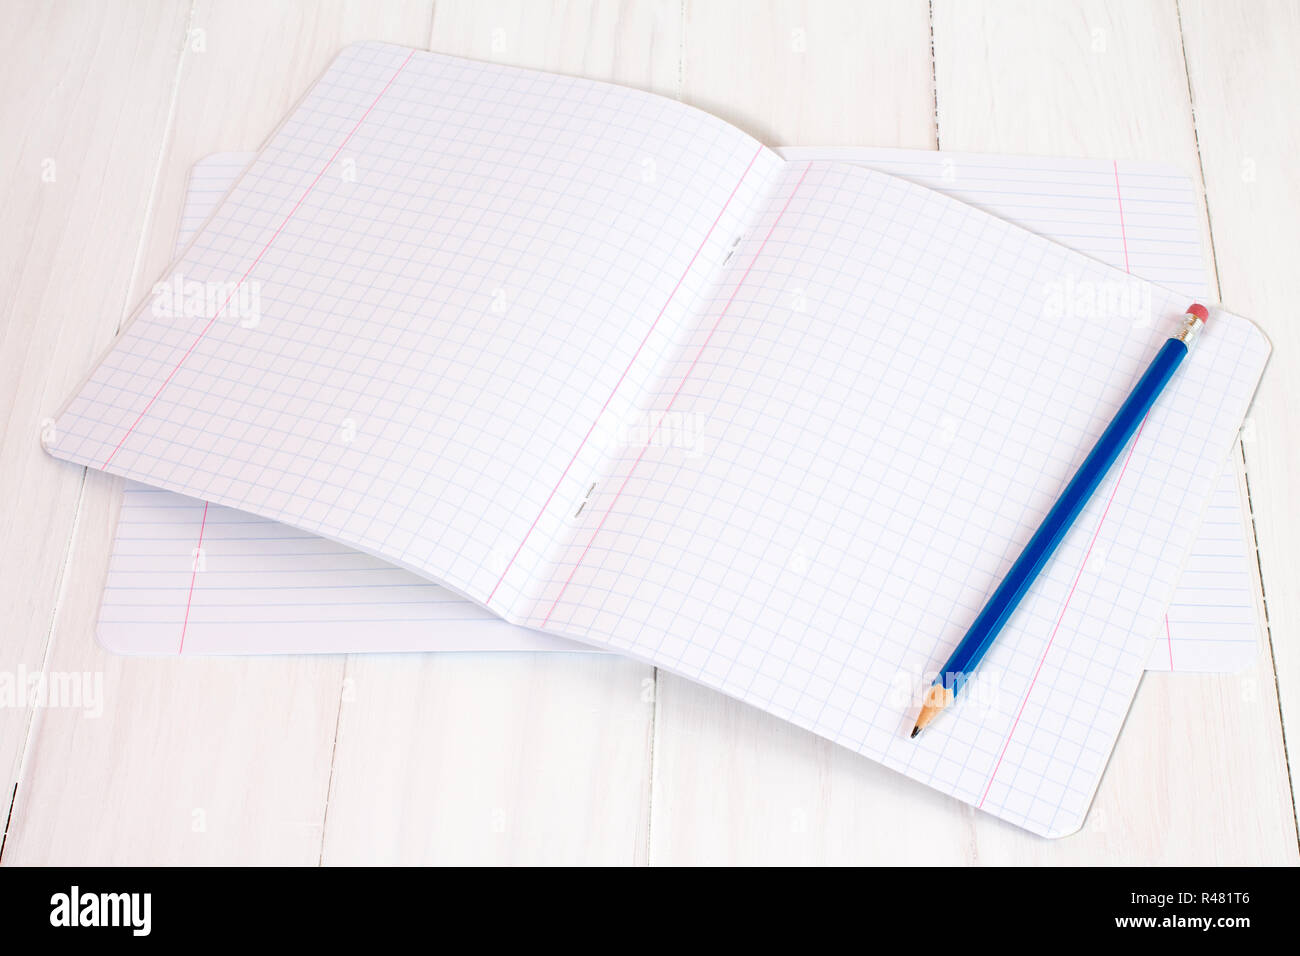 New exercise books and pencil Stock Photo: 226370486 - Alamy